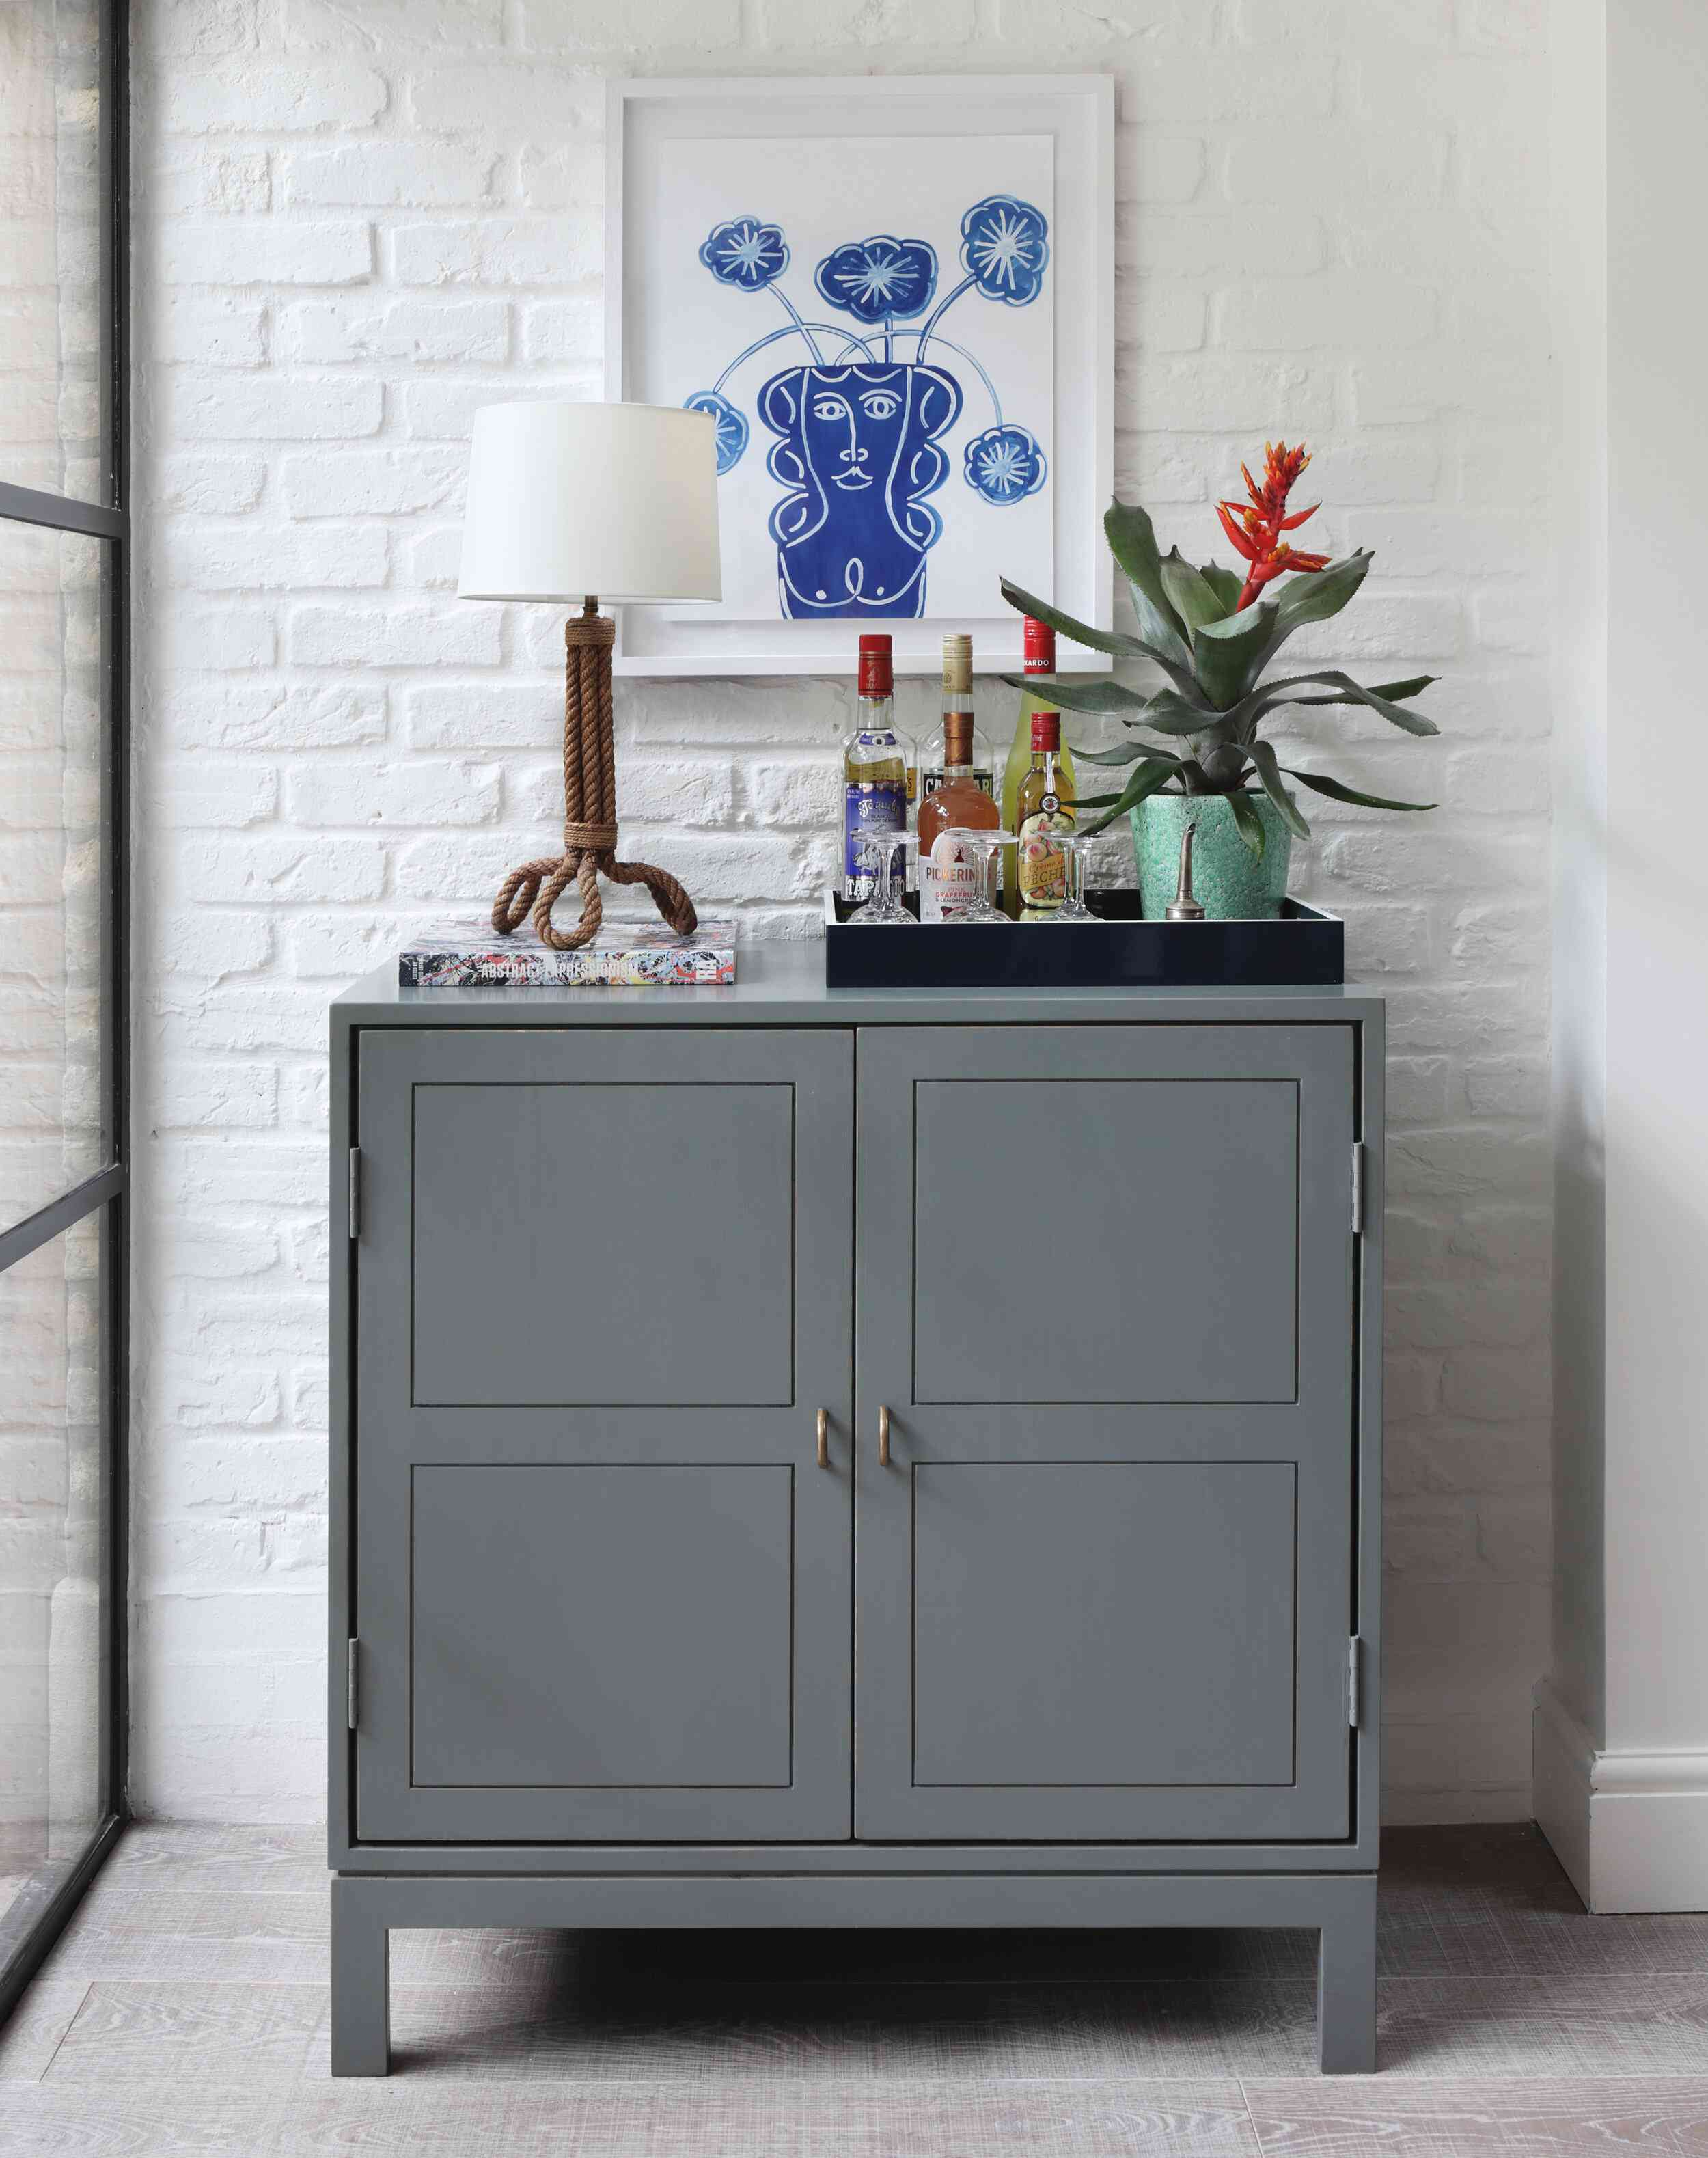 A blue-gray bar cabinet topped with a small tray full of liquor